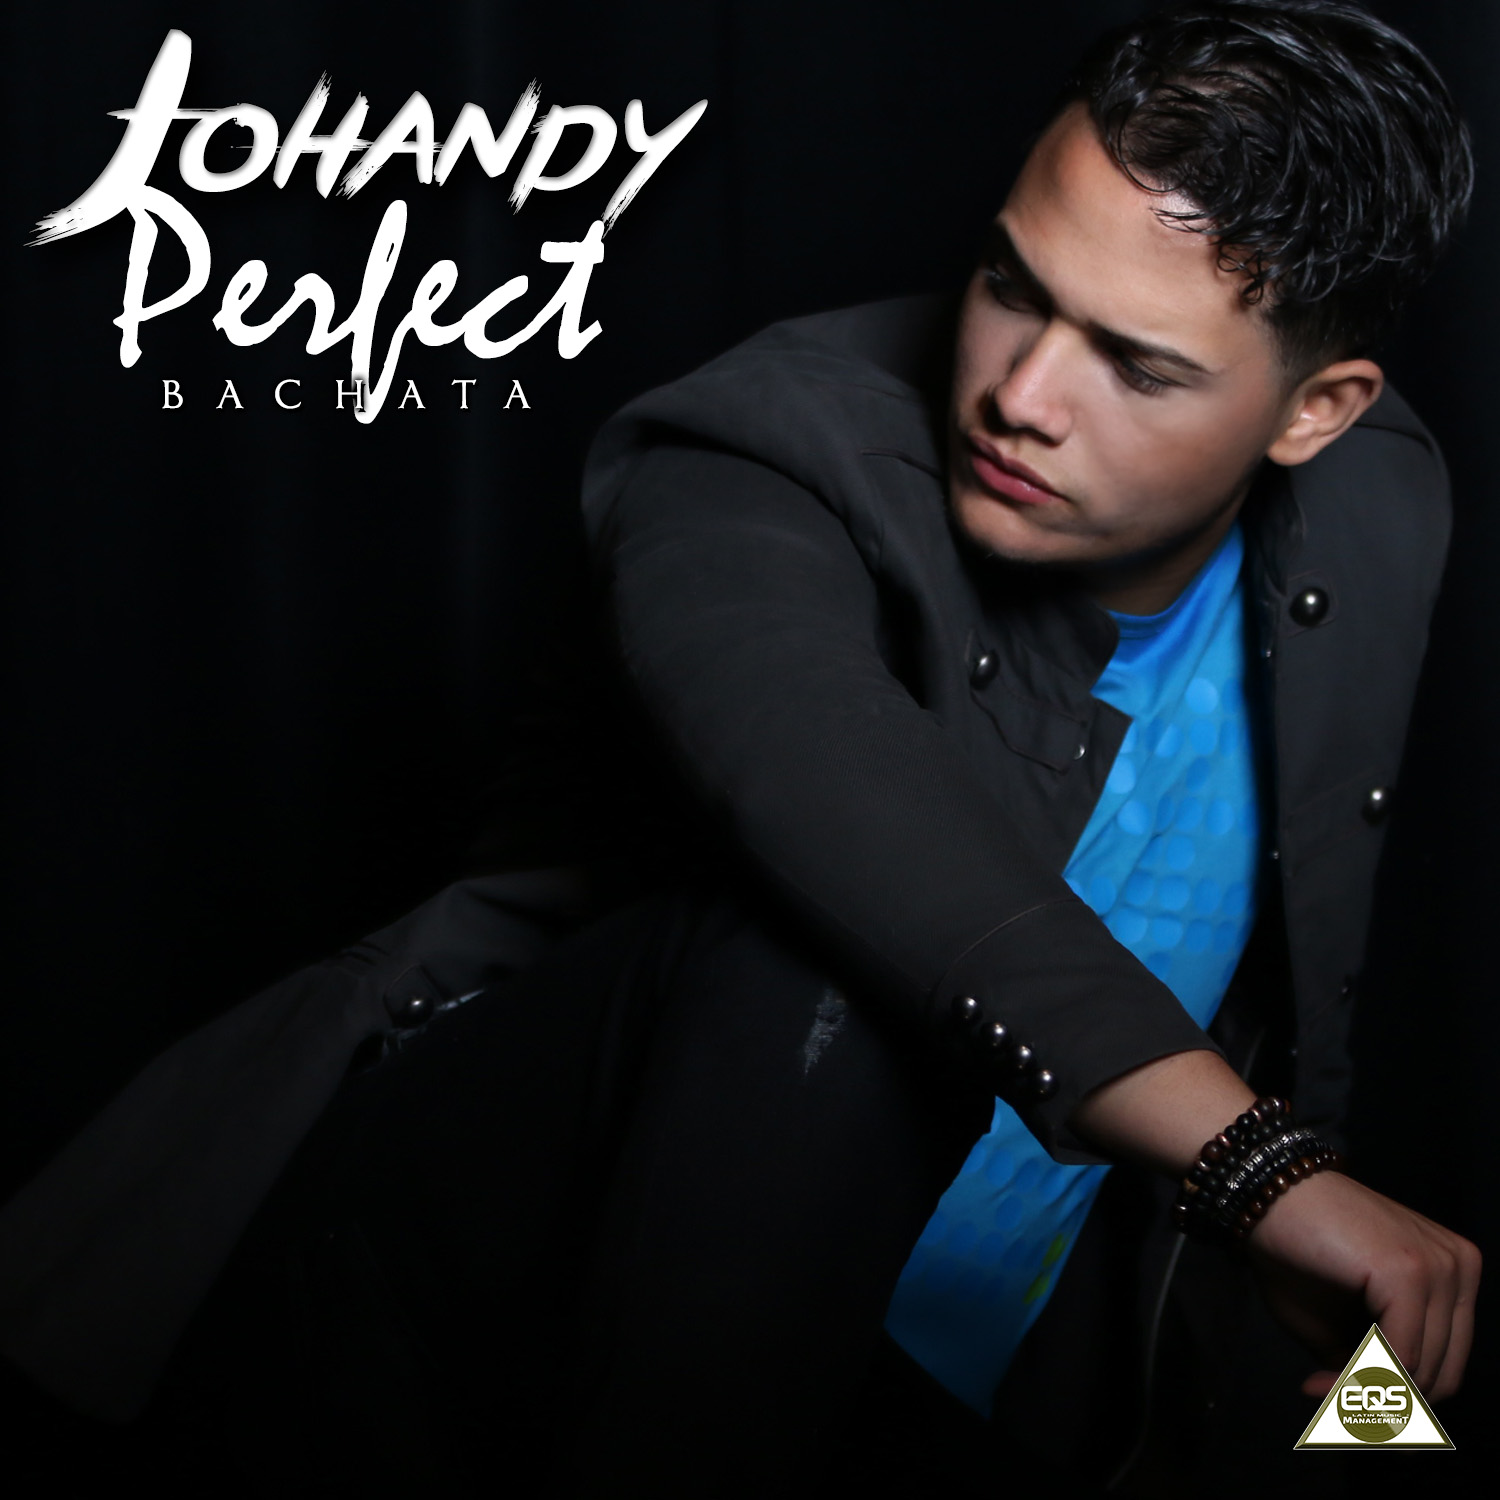 Johandy Perfect Bachata color